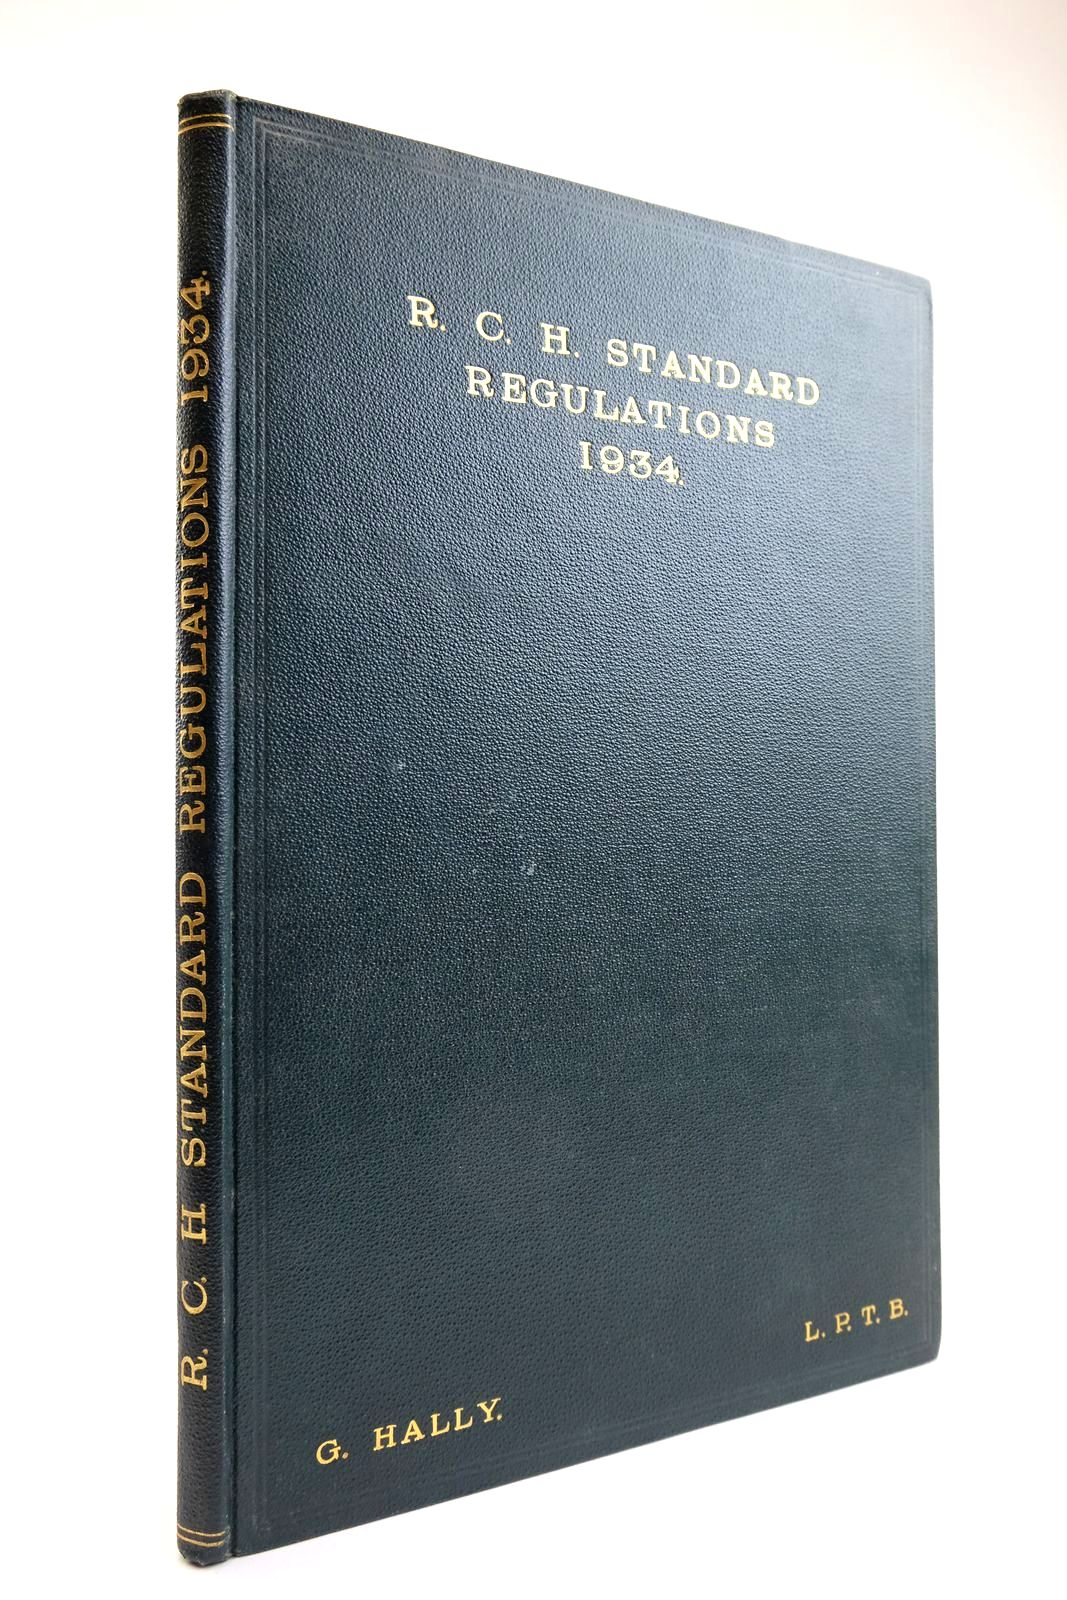 Photo of R.C.H. STANDARD REGULATIONS 1934- Stock Number: 2133479